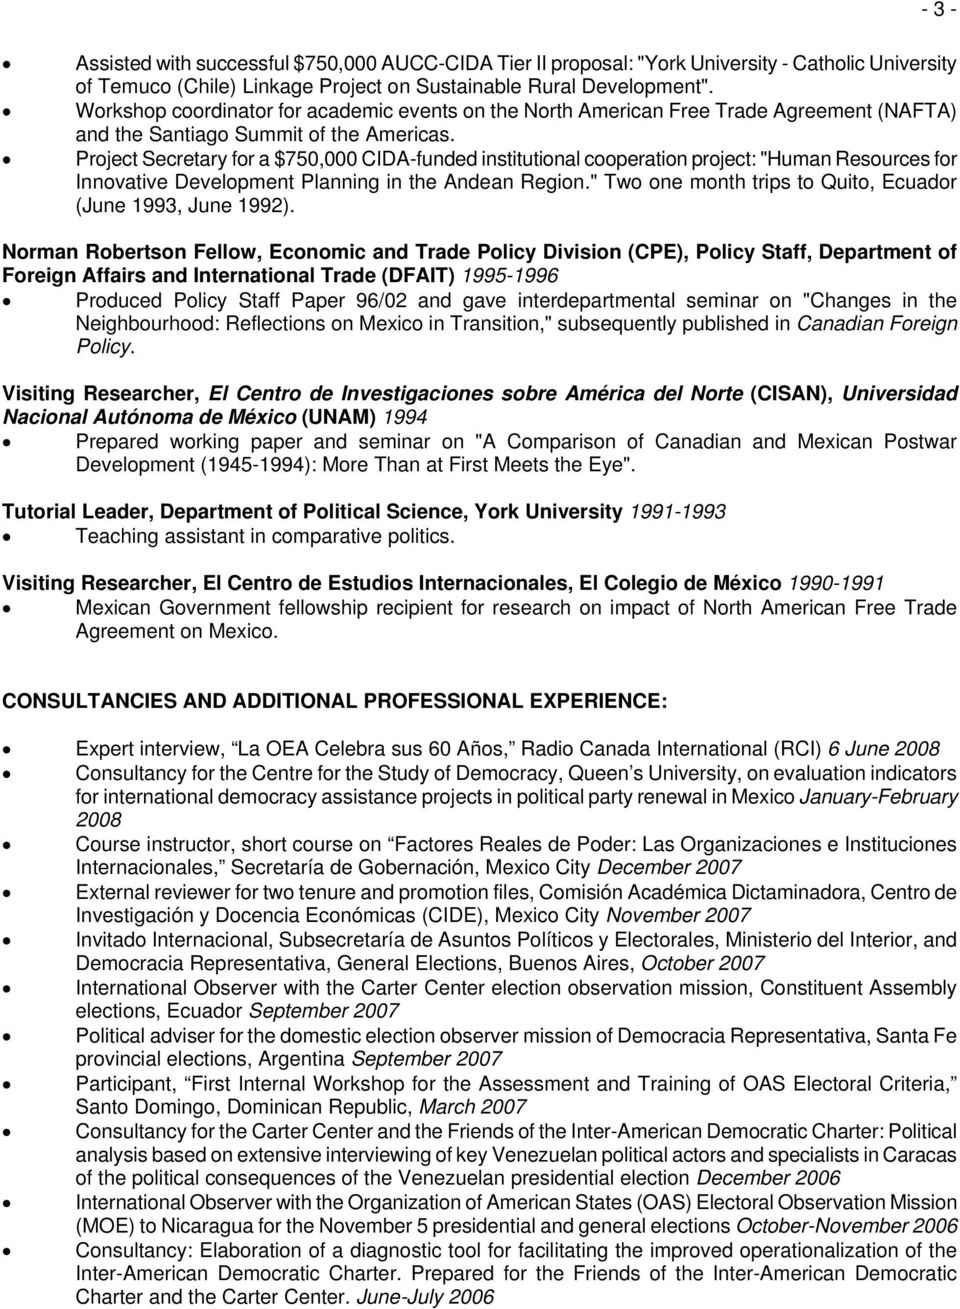 "Project Secretary for a $750,000 CIDA-funded institutional cooperation project: ""Human Resources for Innovative Development Planning in the Andean Region."